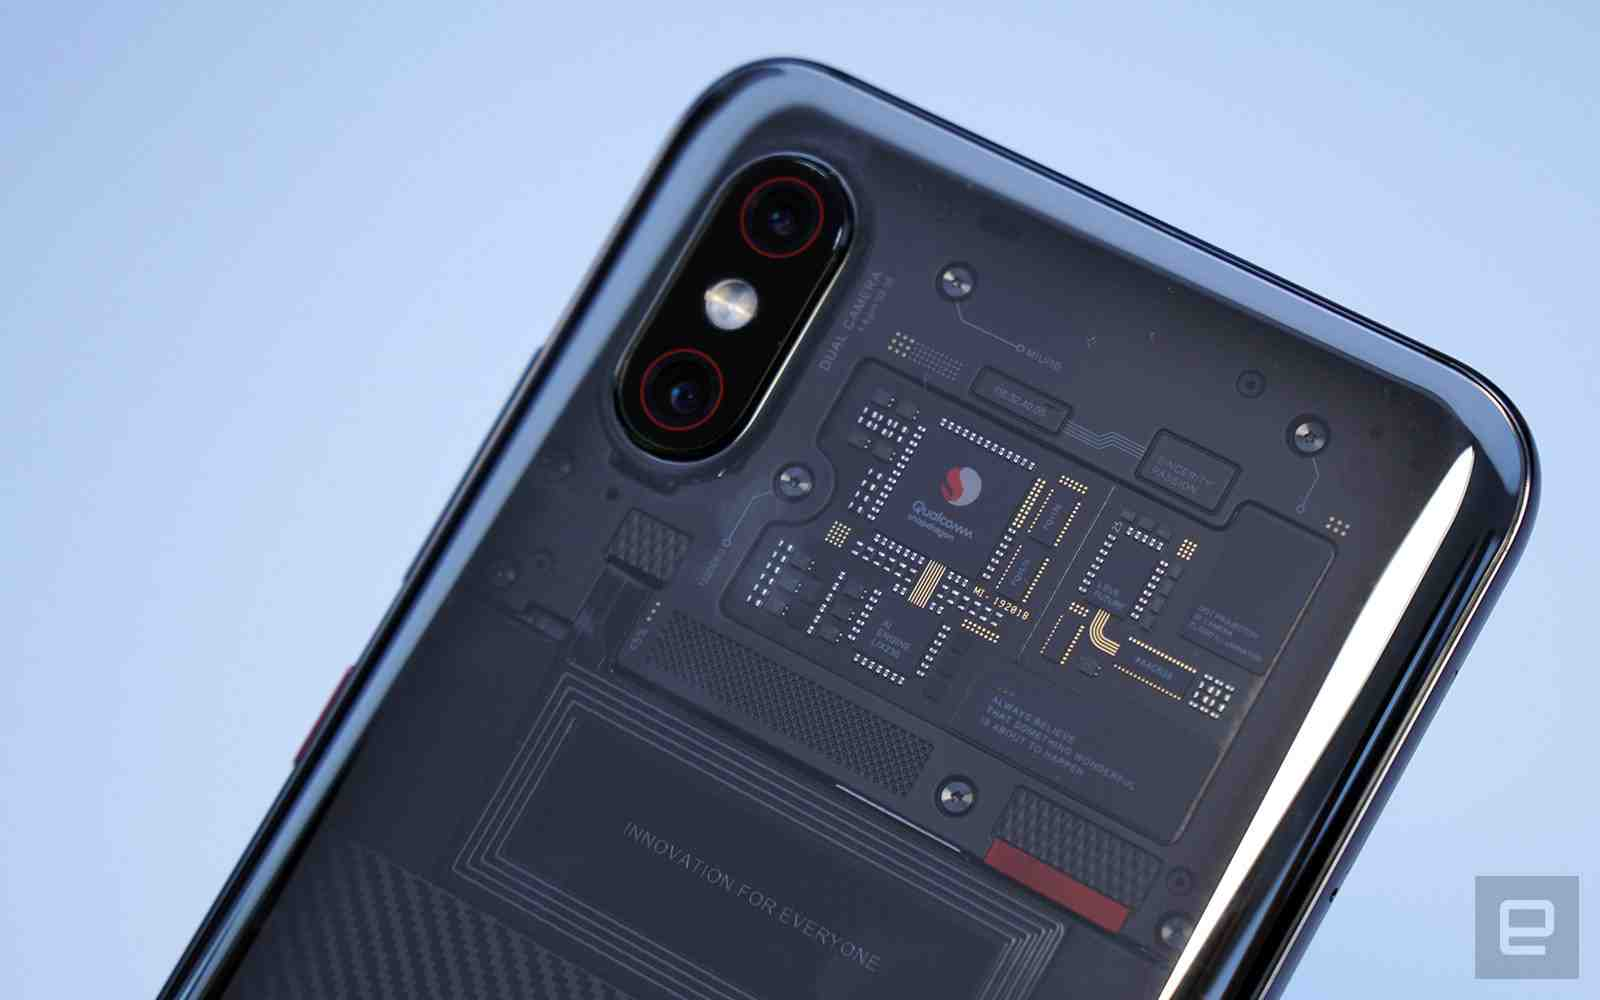 Xiaomi's Mi 8 Explorer Transparent Body Back